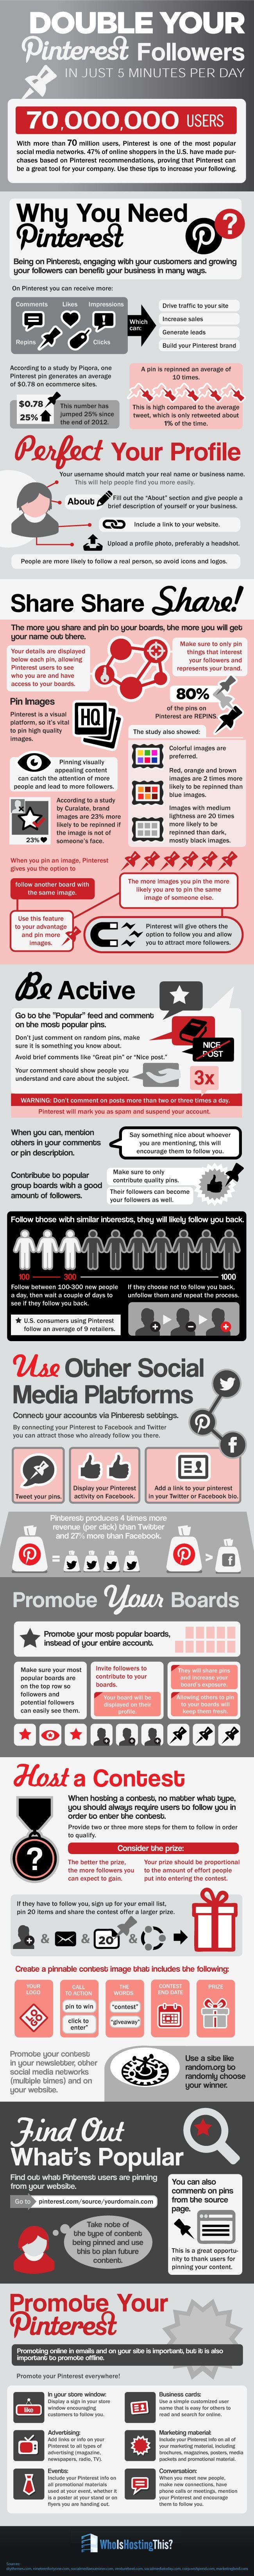 Double your #Pinterest Followers in just 5 minutes per day #infographic